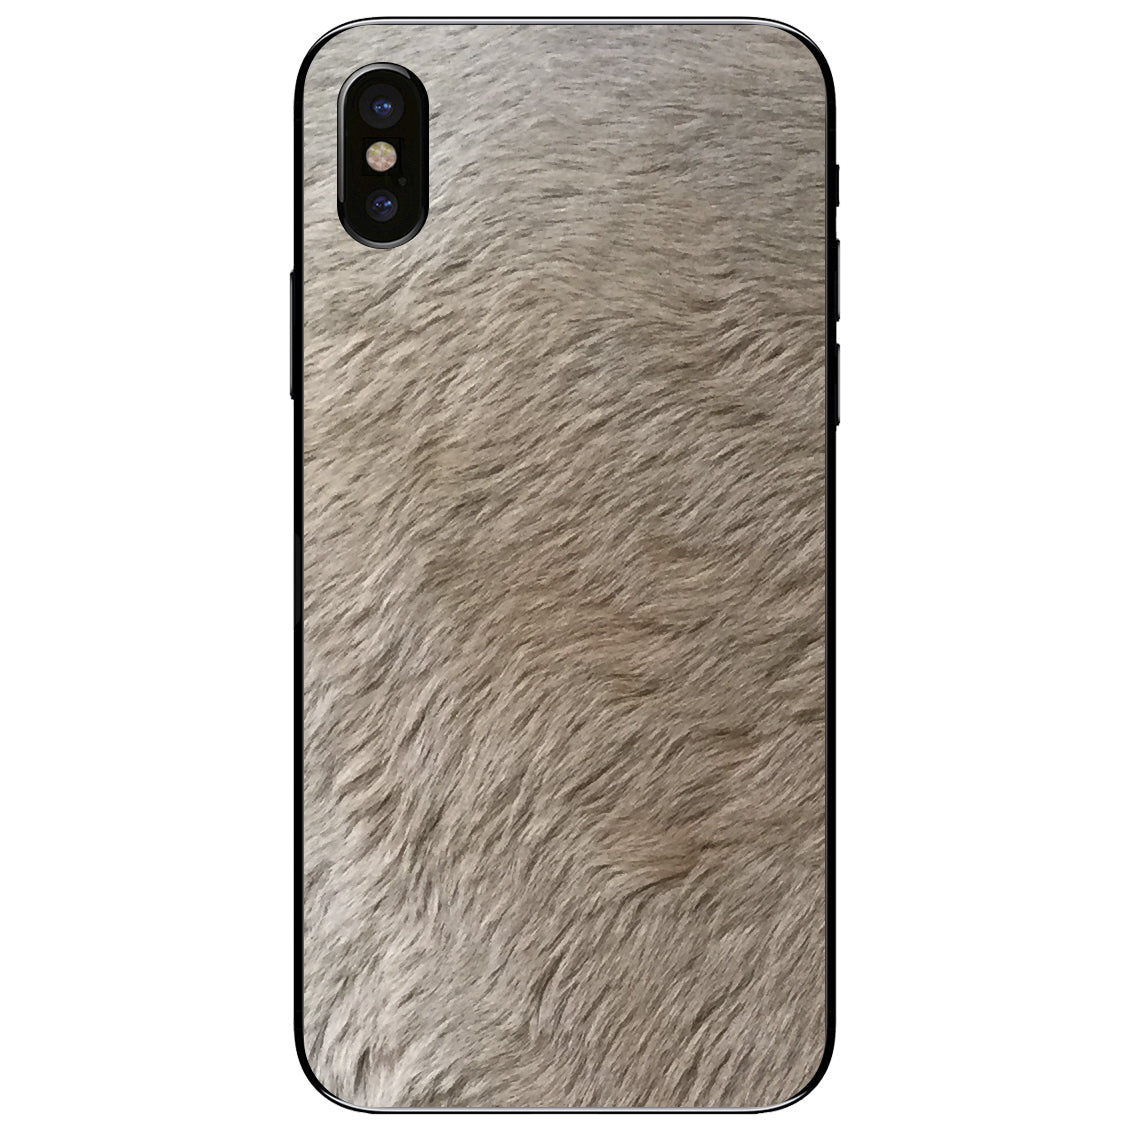 Kangaroo Fur iPhone X Leather Skin